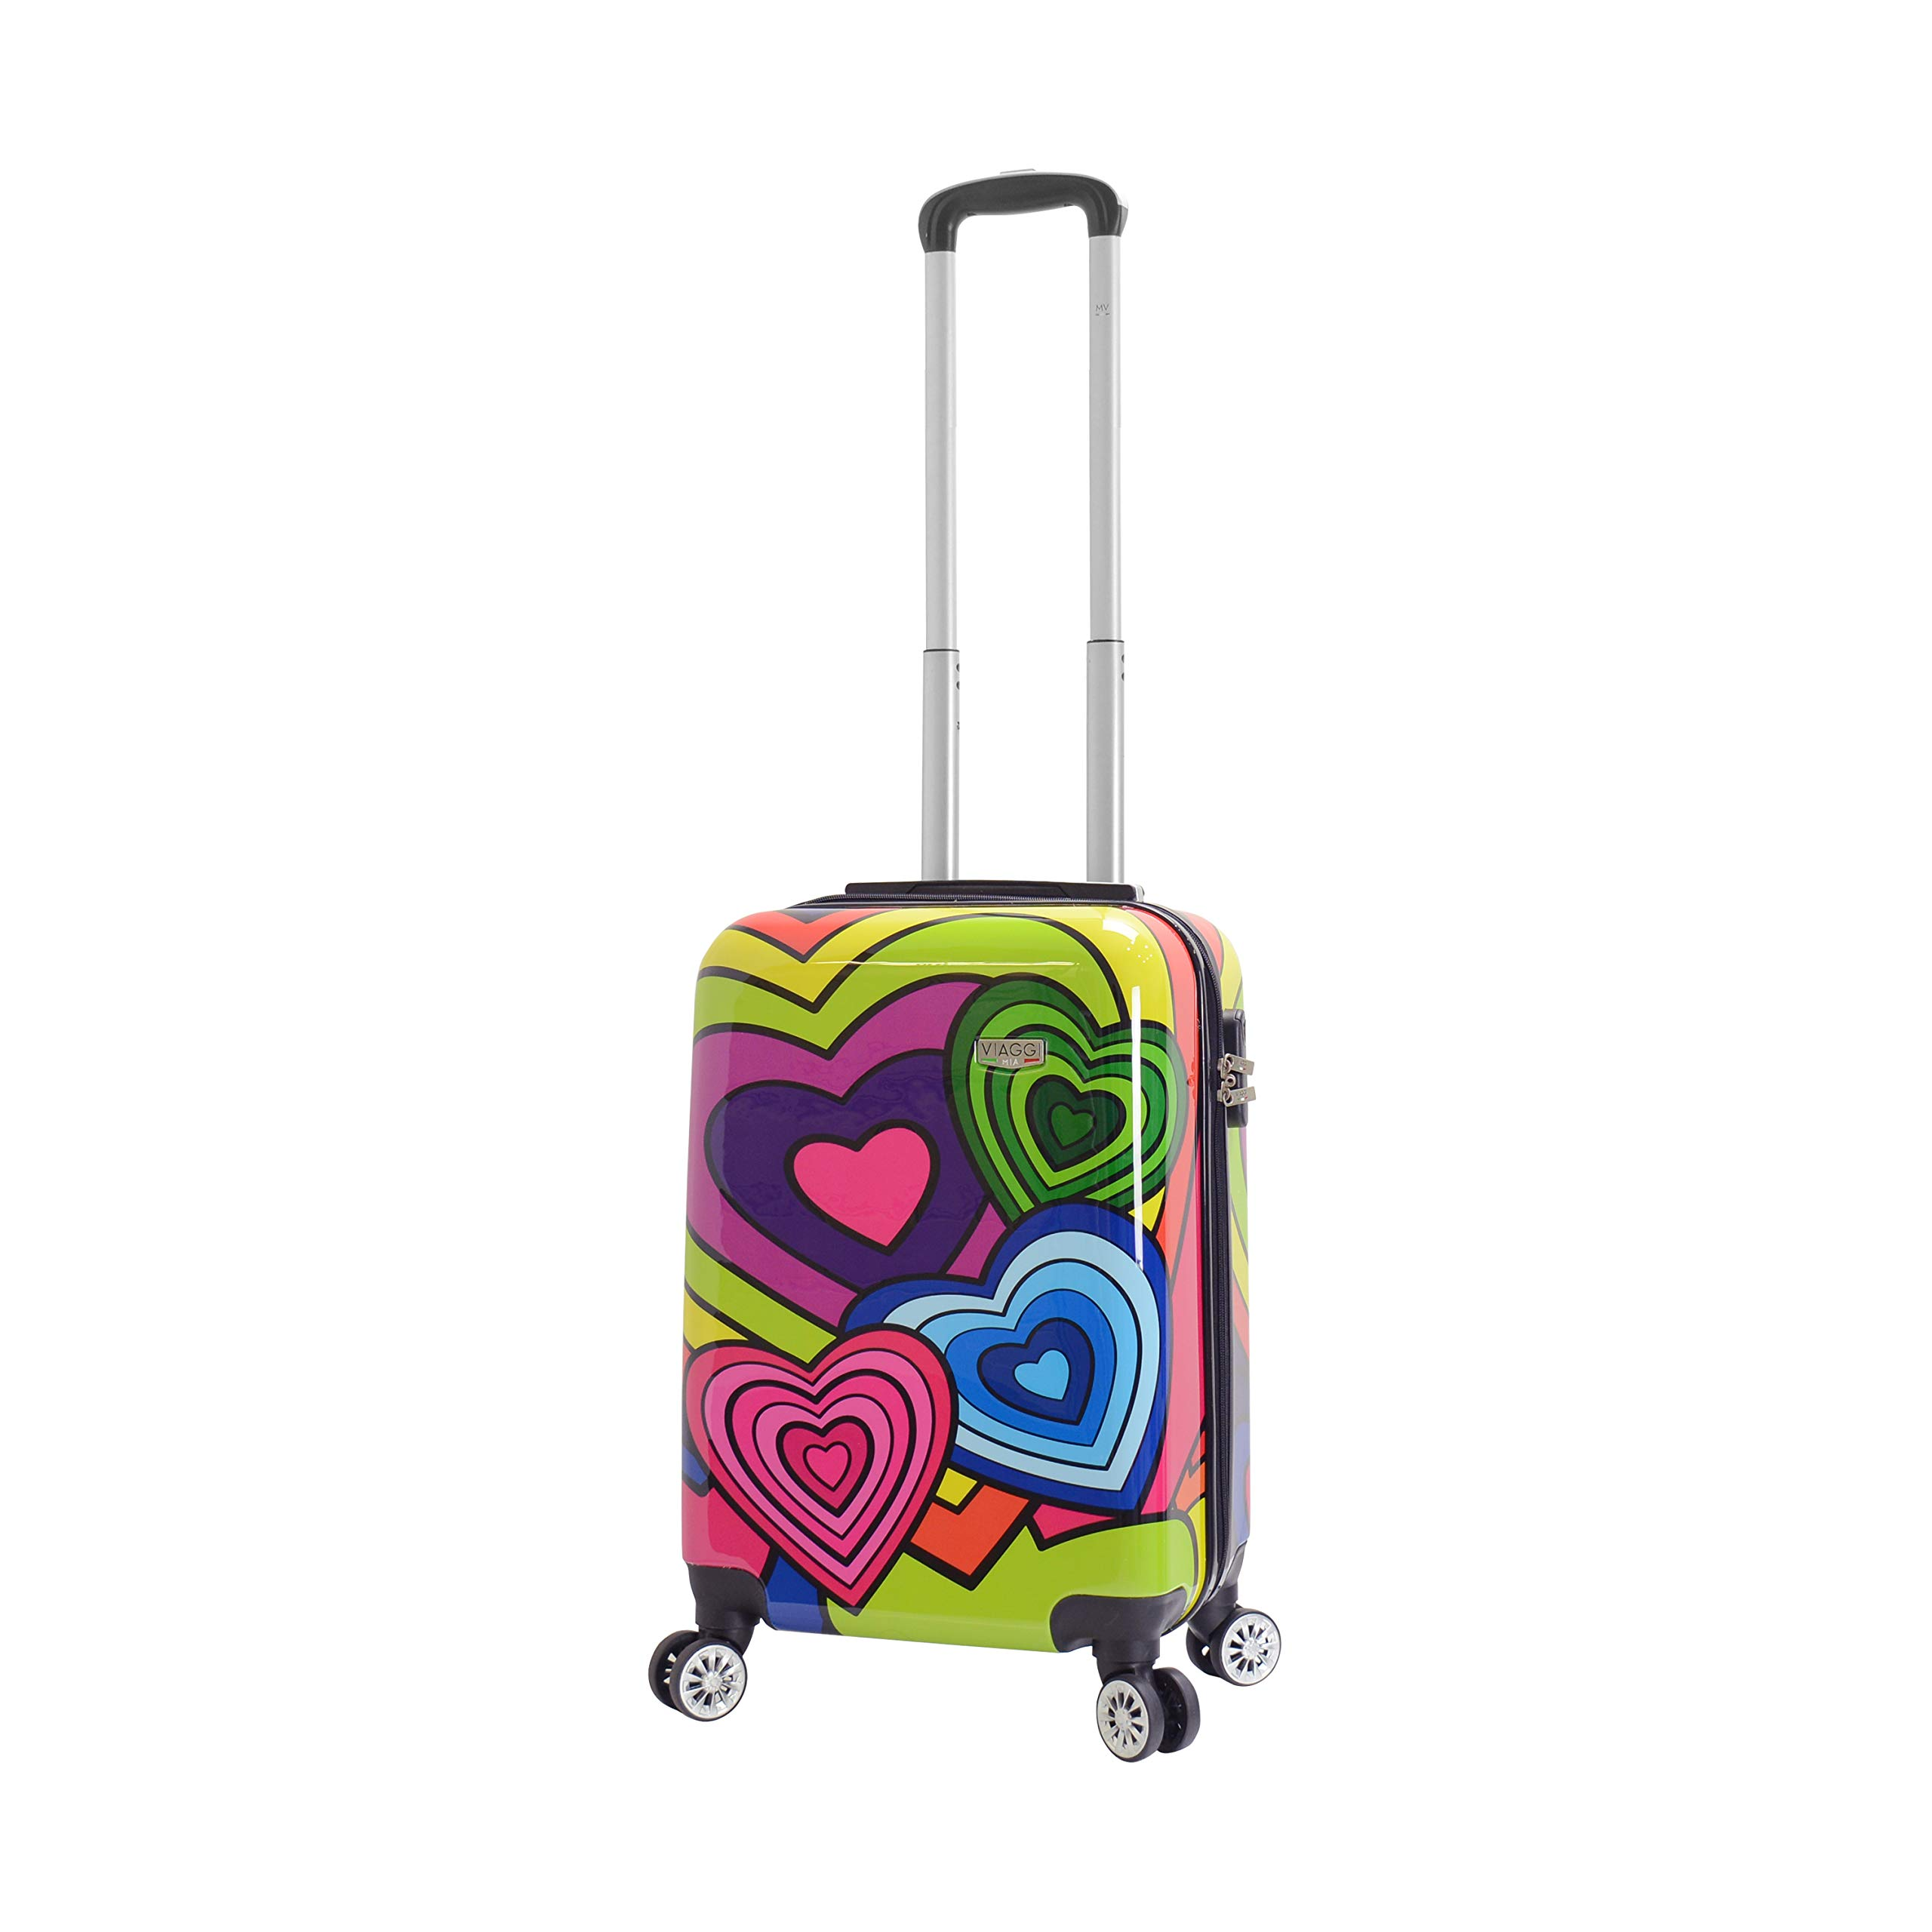 Viaggi Mia Italy Hardside Spinner Carry-on, Pop Heart